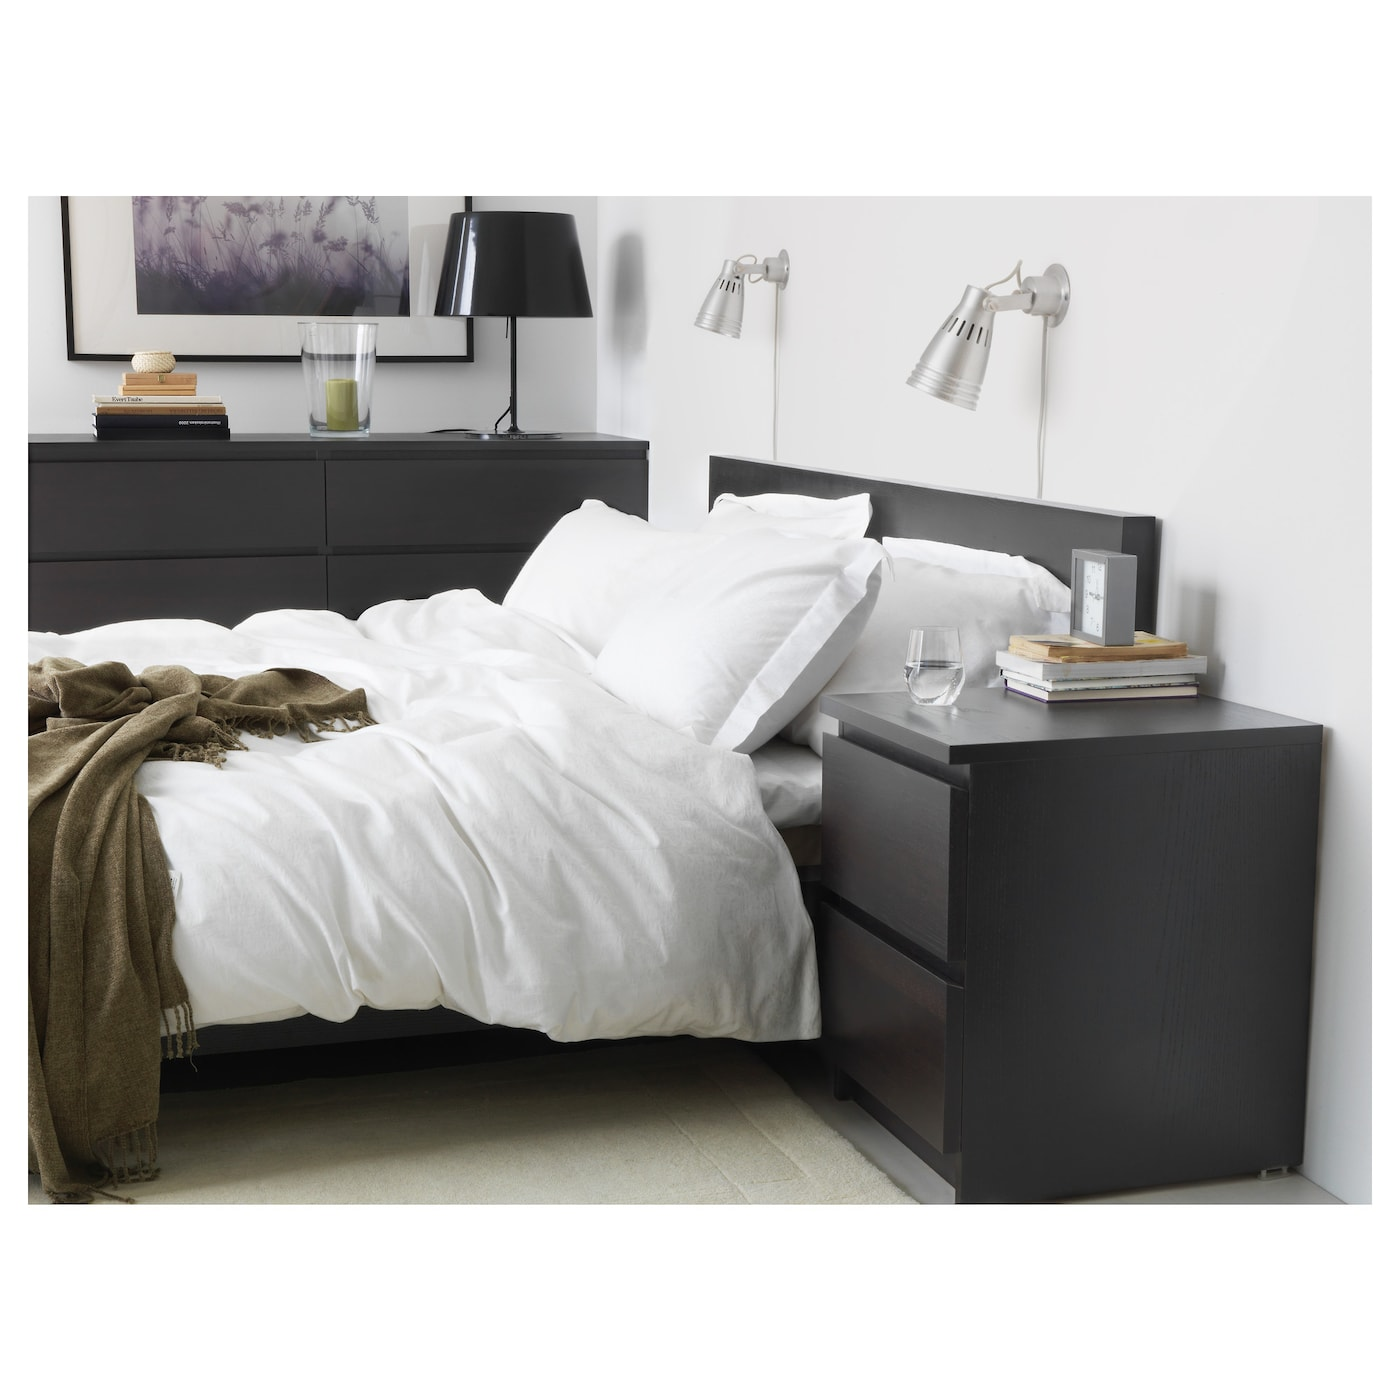 malm commode 2 tiroirs brun noir 40 x 55 cm ikea. Black Bedroom Furniture Sets. Home Design Ideas